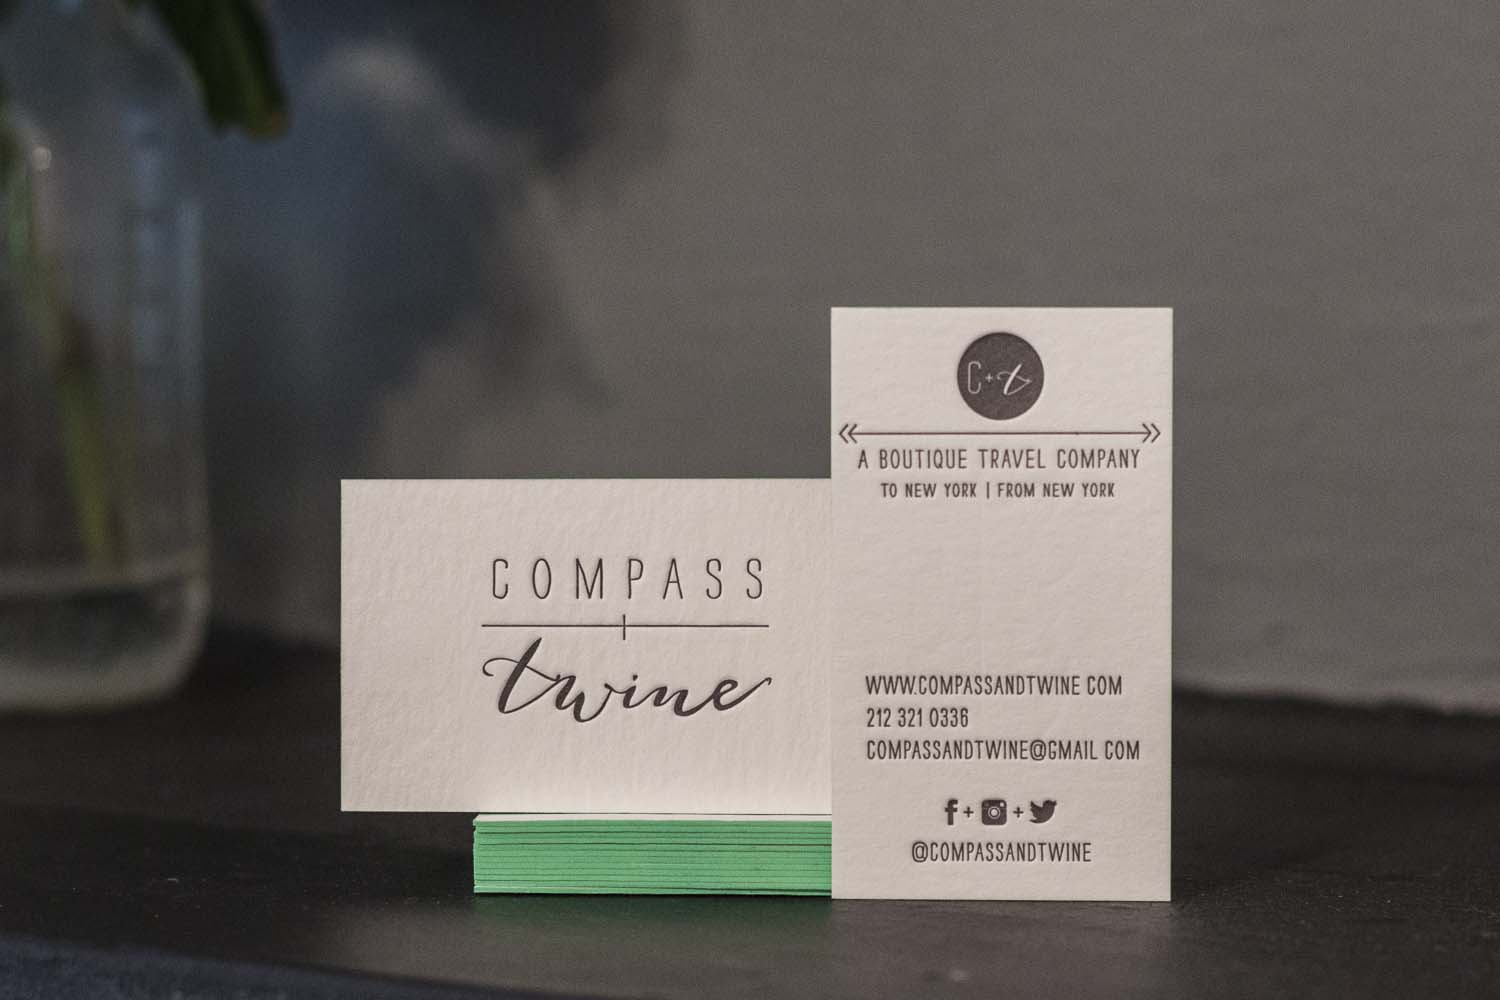 Compass & Twine's Business Cards